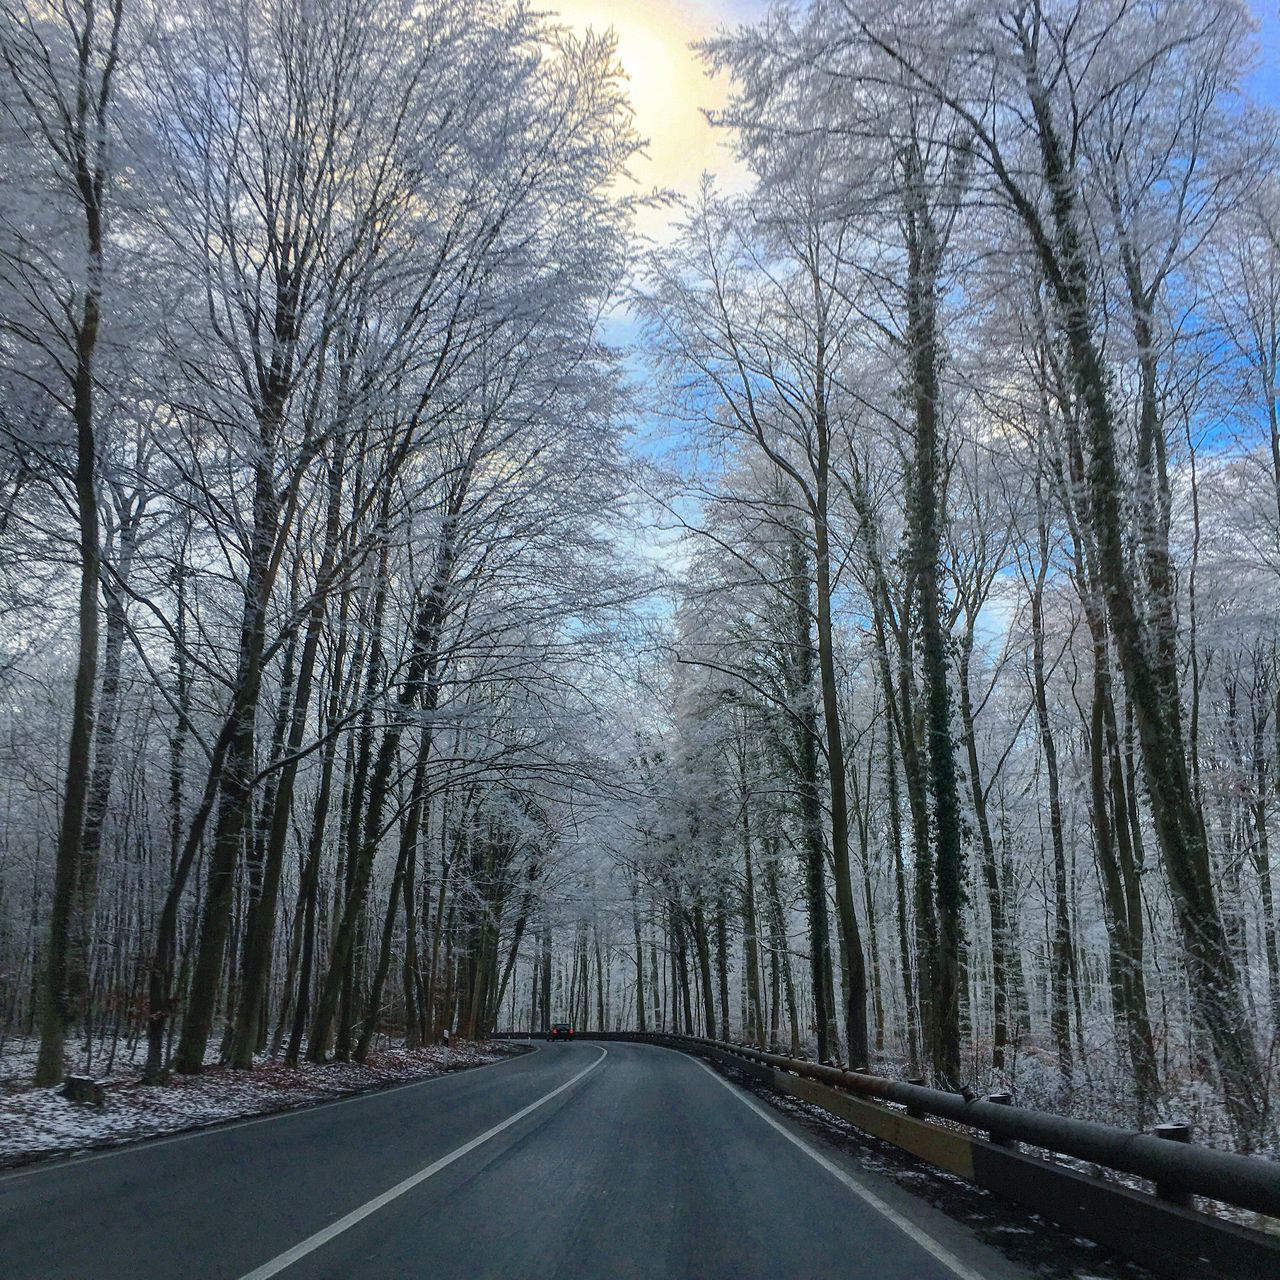 bare tree, road, the way forward, tree, transportation, nature, winter, snow, tranquility, cold temperature, tranquil scene, day, no people, branch, outdoors, beauty in nature, scenics, landscape, sky